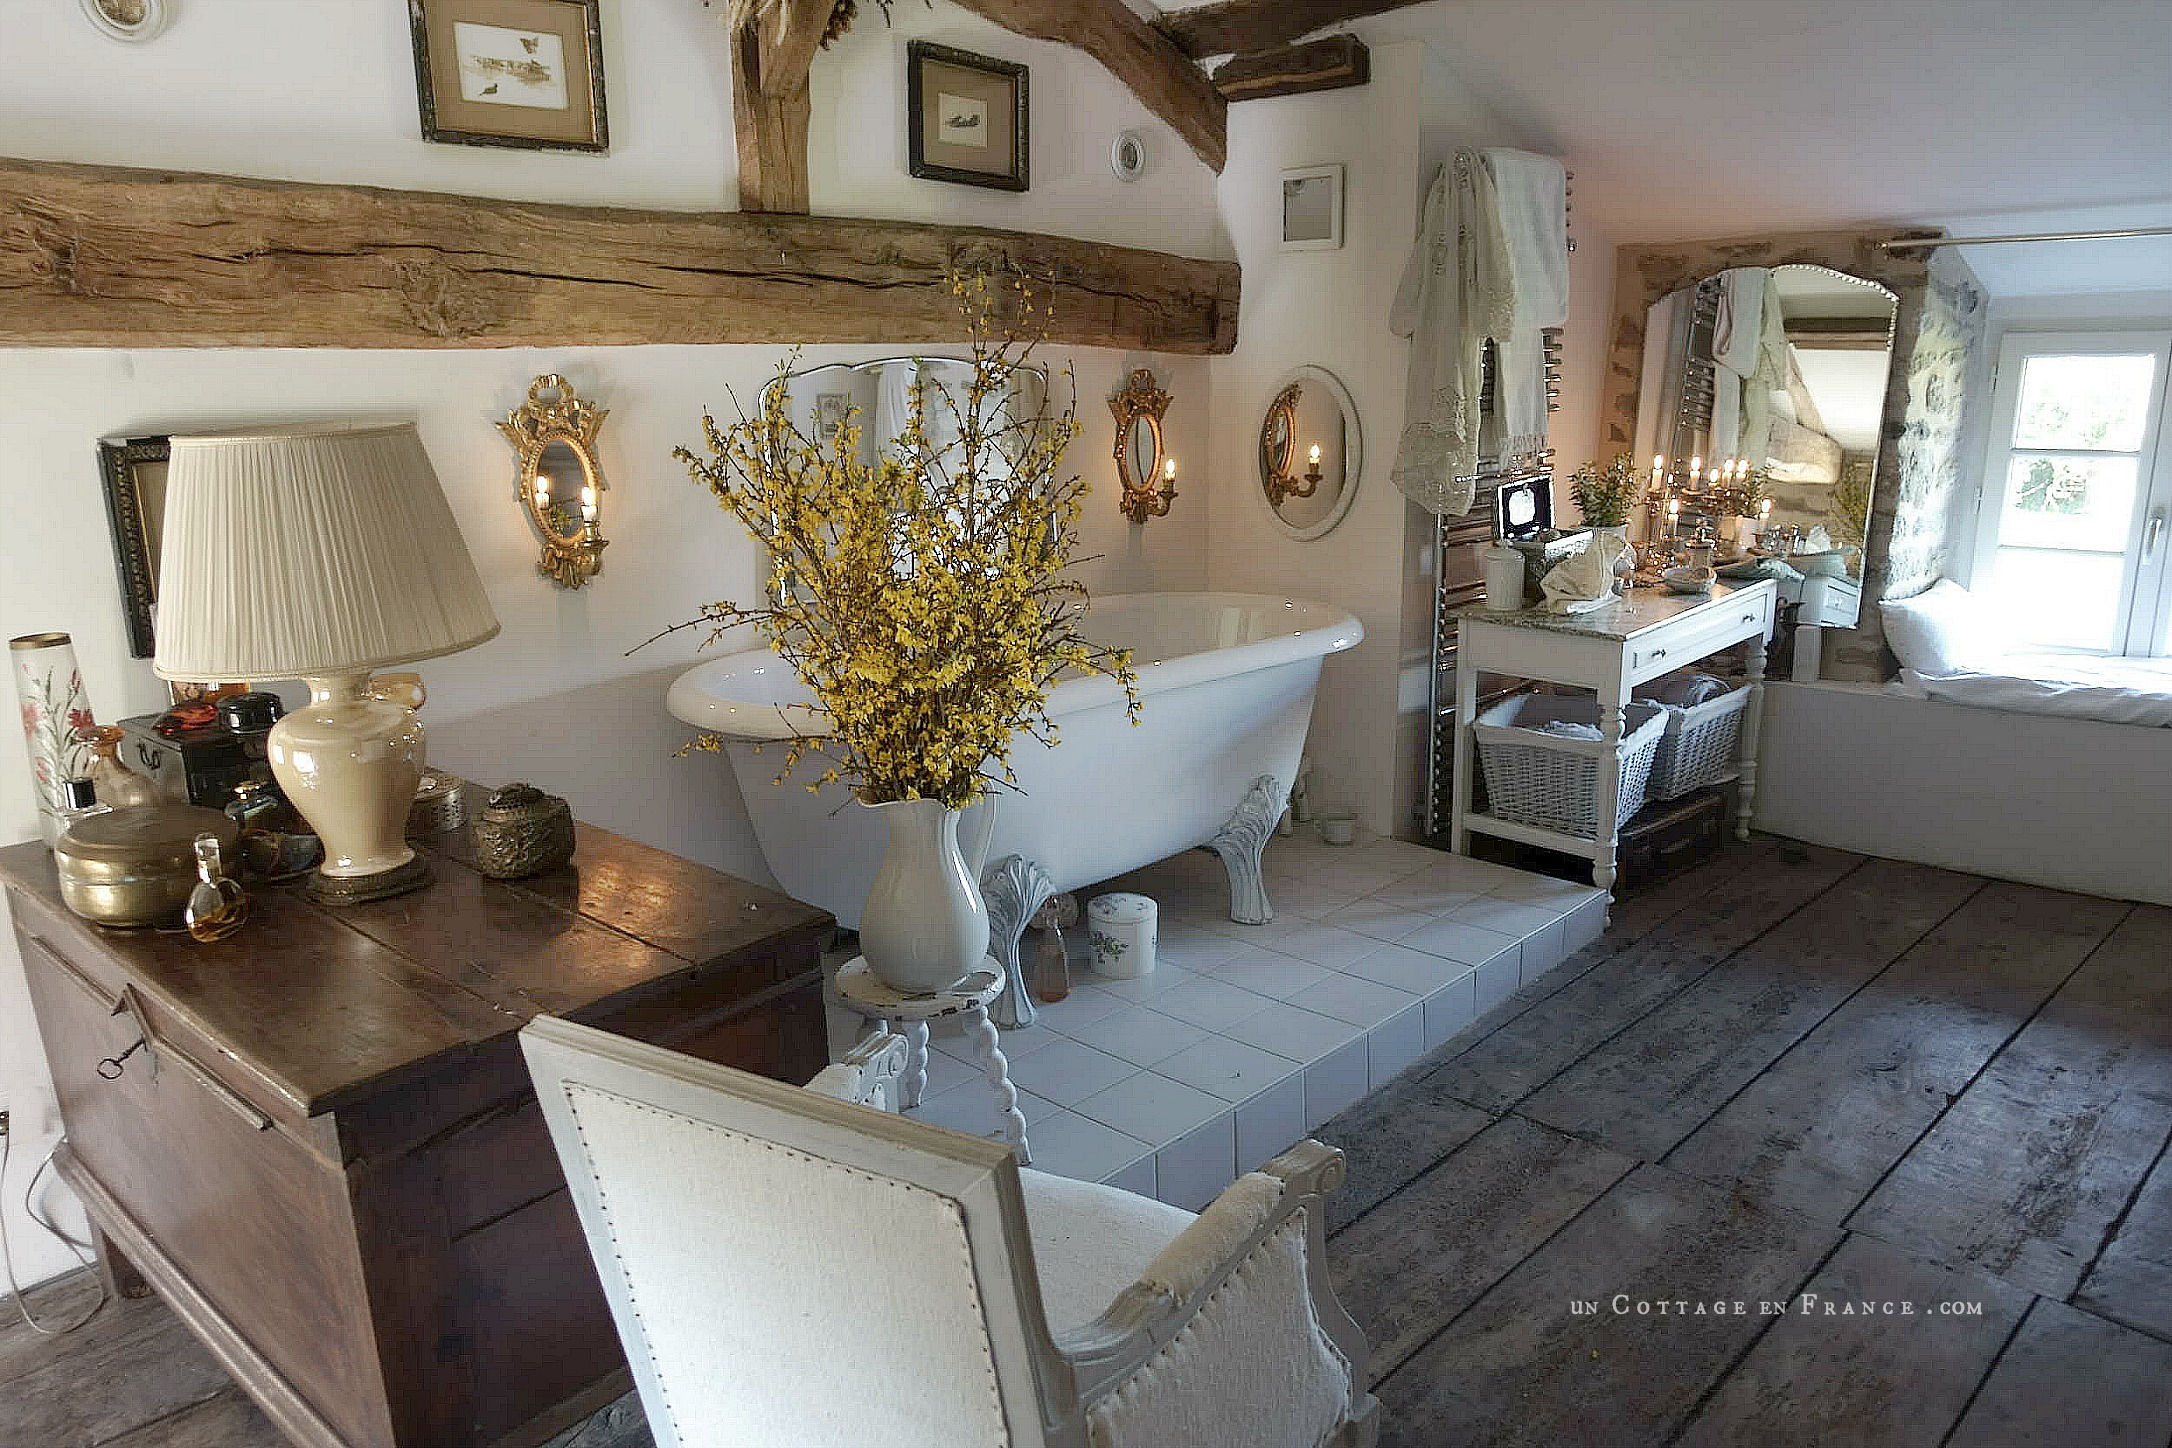 #romanticbathroom #whitecottagecharm #uncottageenfrance #campagnechic #frenchinterior #frenchfarmhousestyle #frenchcountry #frenchliving #fixerupperstyle #shabbychicbathroom #frenchcountrycottage #allthingsfrench #frenchcottage #farmhousevignette #cottagevignette #chippypaint #frenchdecoration #fermette #countrychic #rustique #rusticdecor #decorustic #cottagedecor #maisondecampagne #campagnedecoration #countryhomemag #brocante